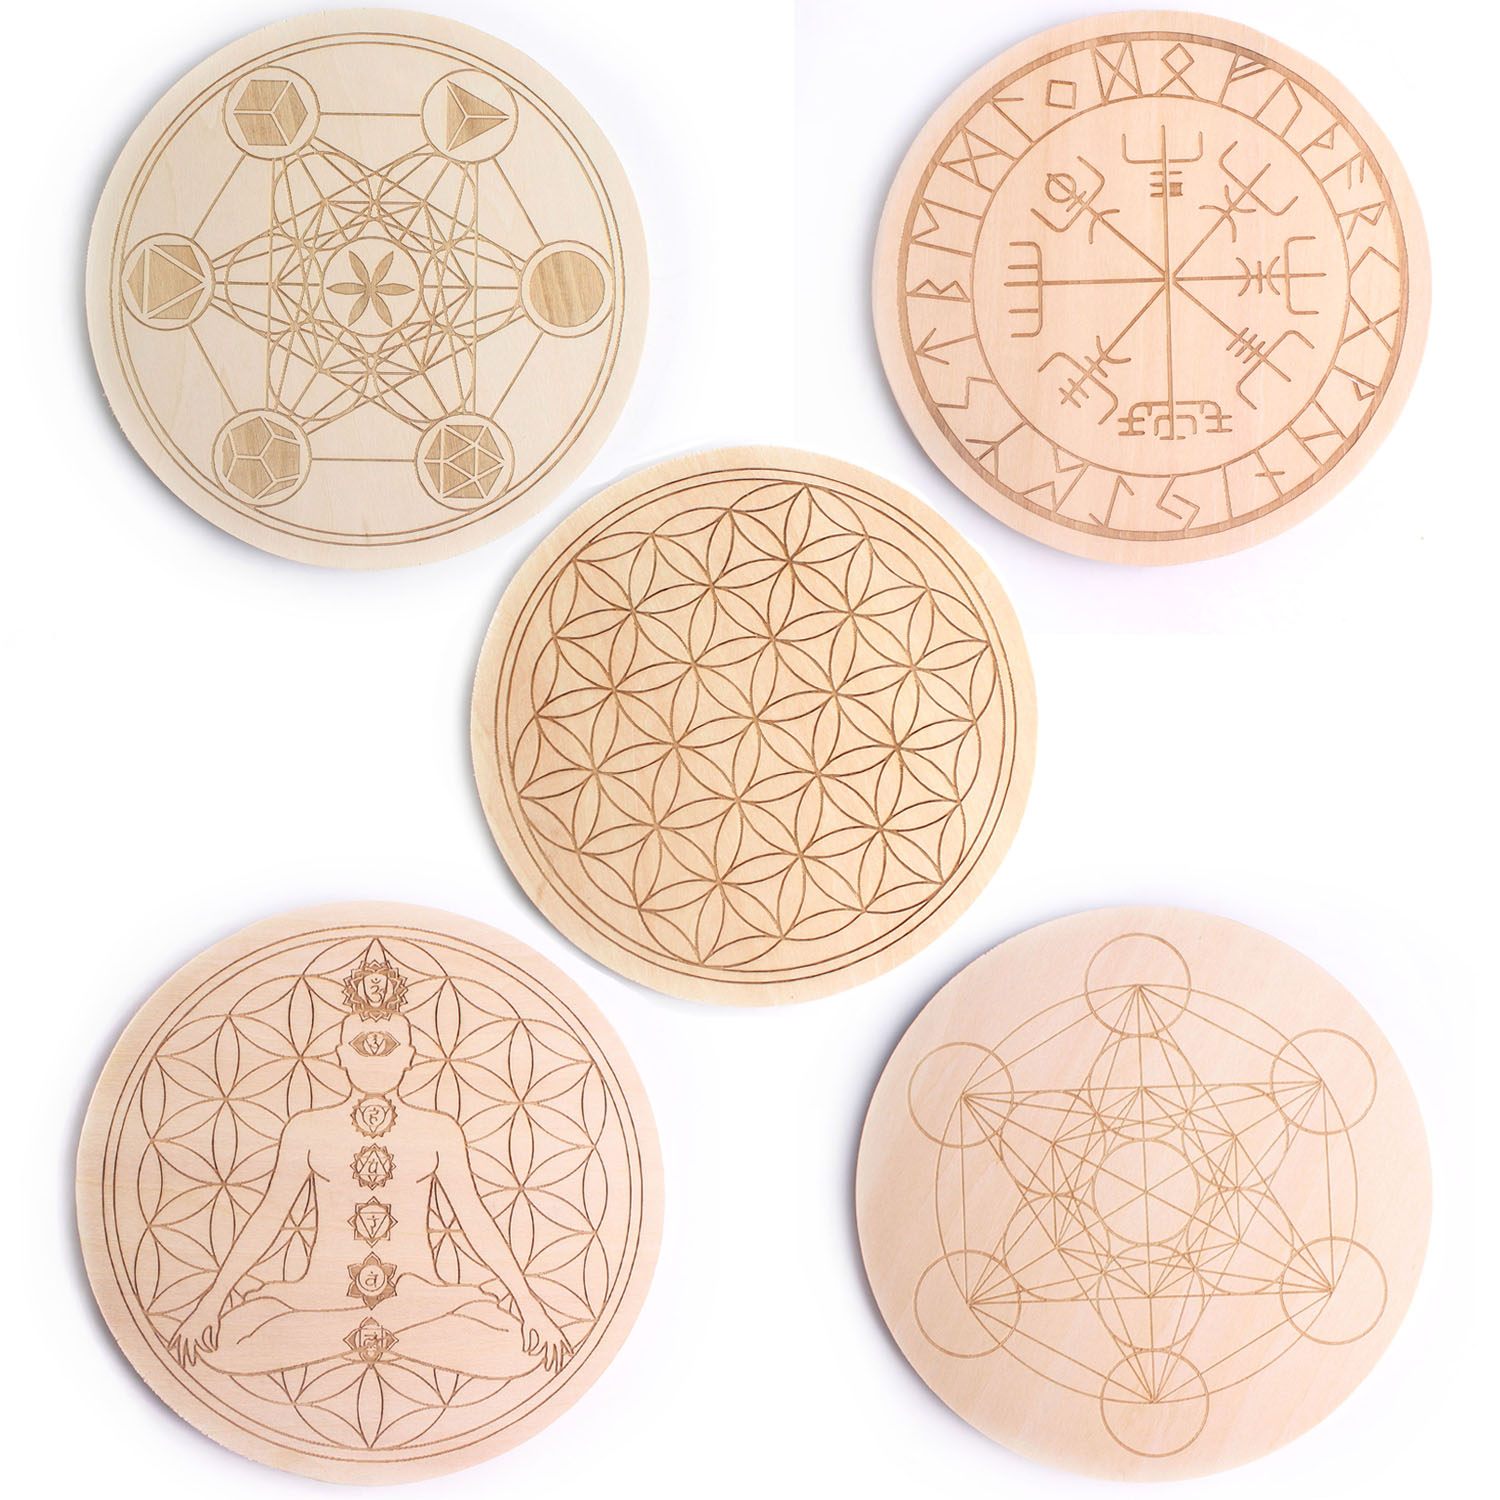 1PC Chakra Flower of life Symbol Natural 7 Kinds Round Wood Board Circles Carved Coaster For Crystal Stone Set DIY Decor Healing|Stones| - AliExpress